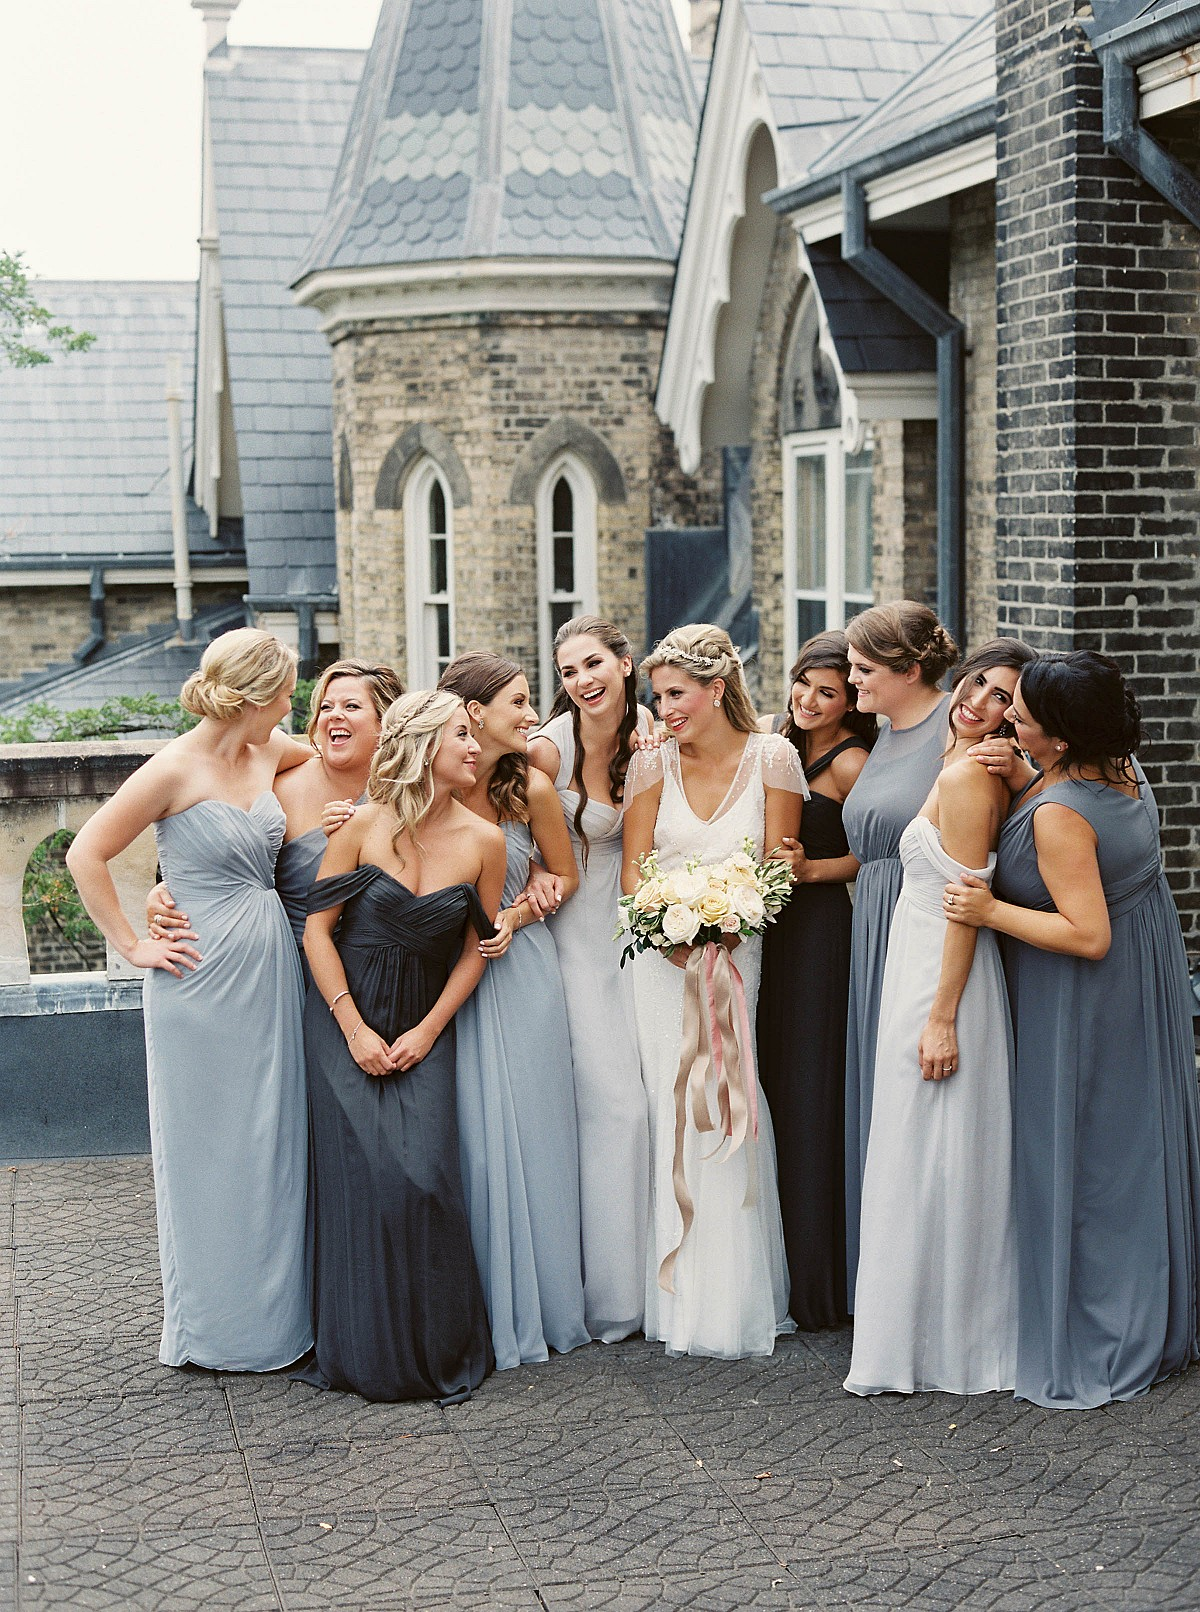 When He Found Her   Our favorite bridesmaid looks